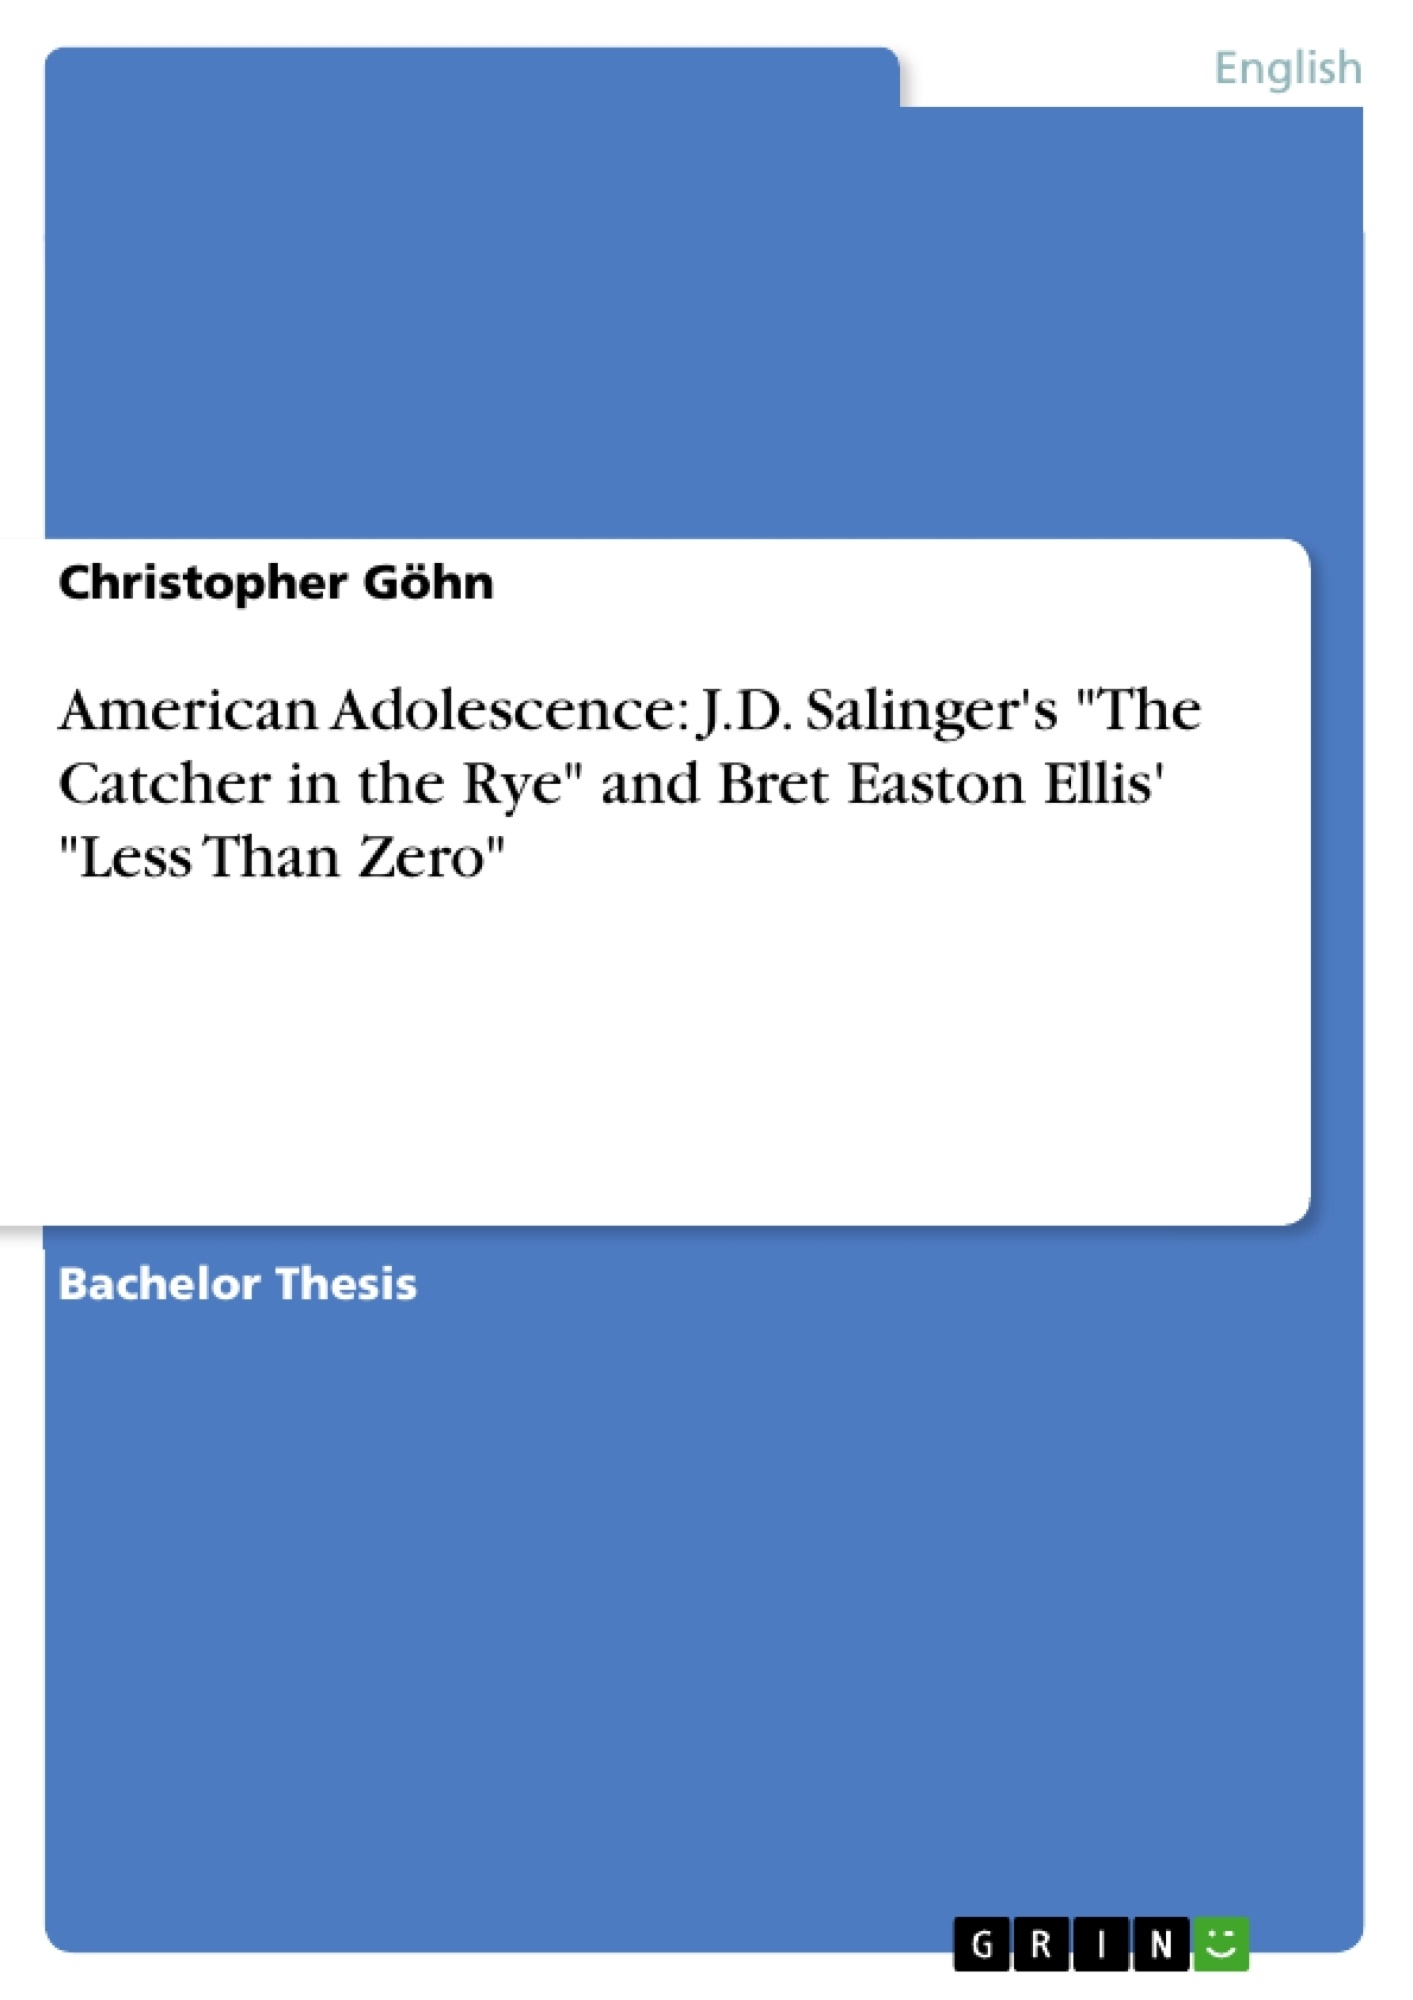 catcher in the rye essay topics pdf essay american adolescence j d salinger s the catcher in rye and